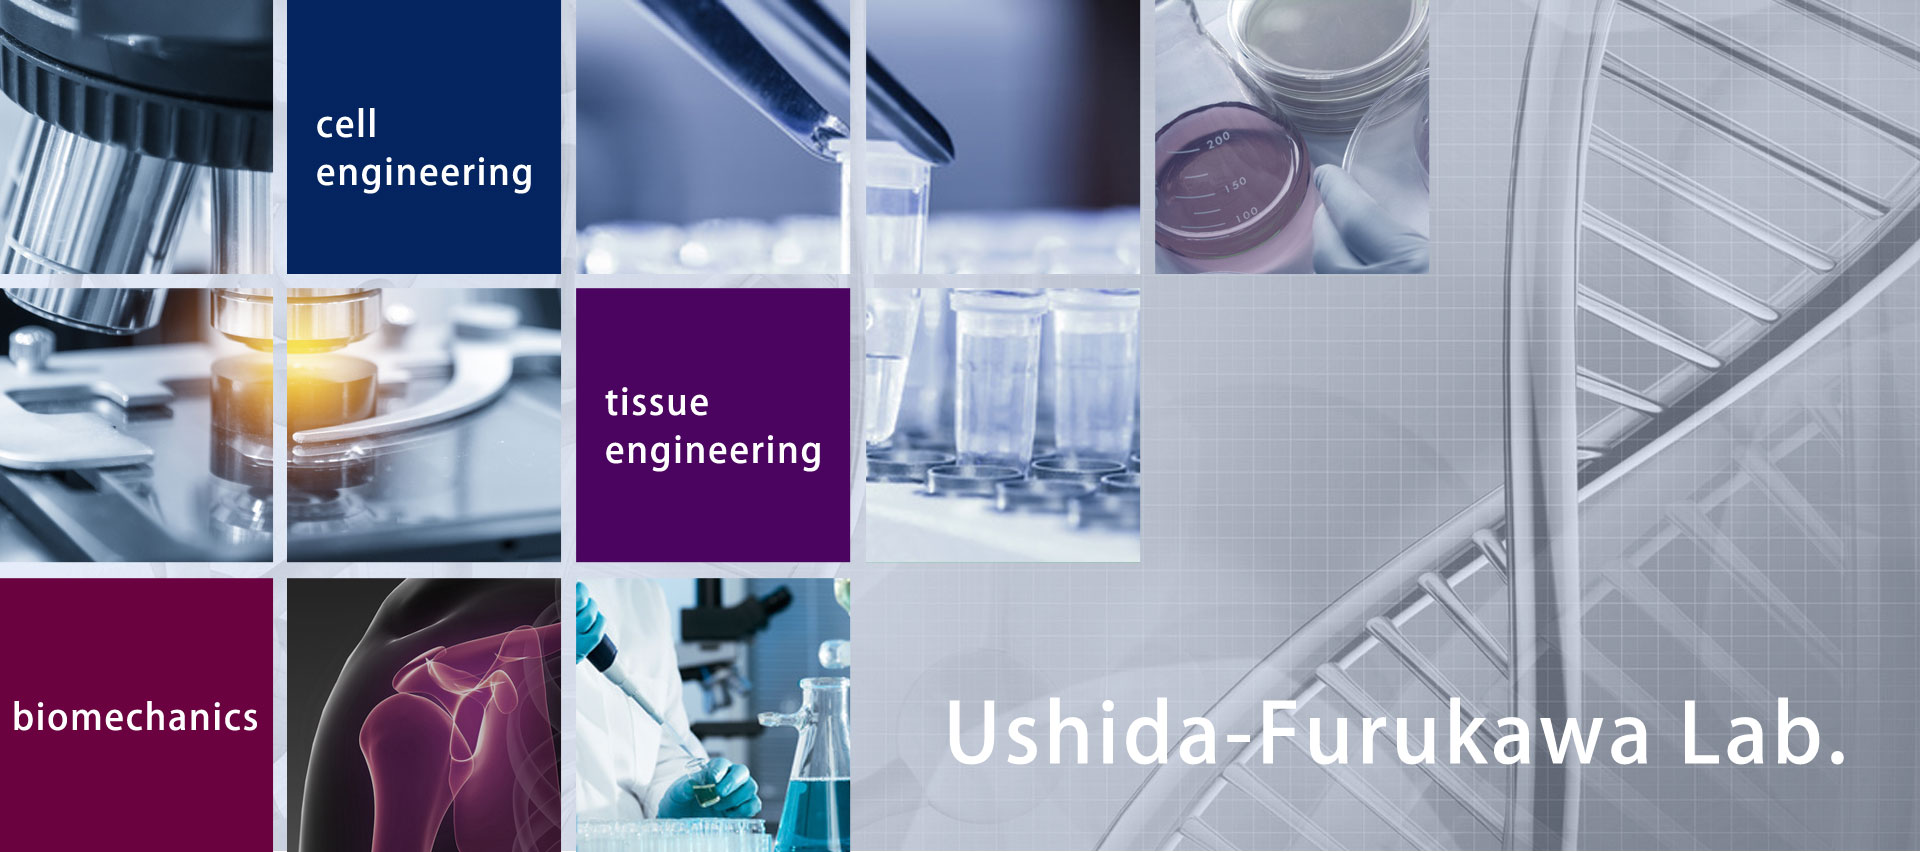 cell engineering, tissue engineering, biomechanics, Ushida-Furukawa Lab.